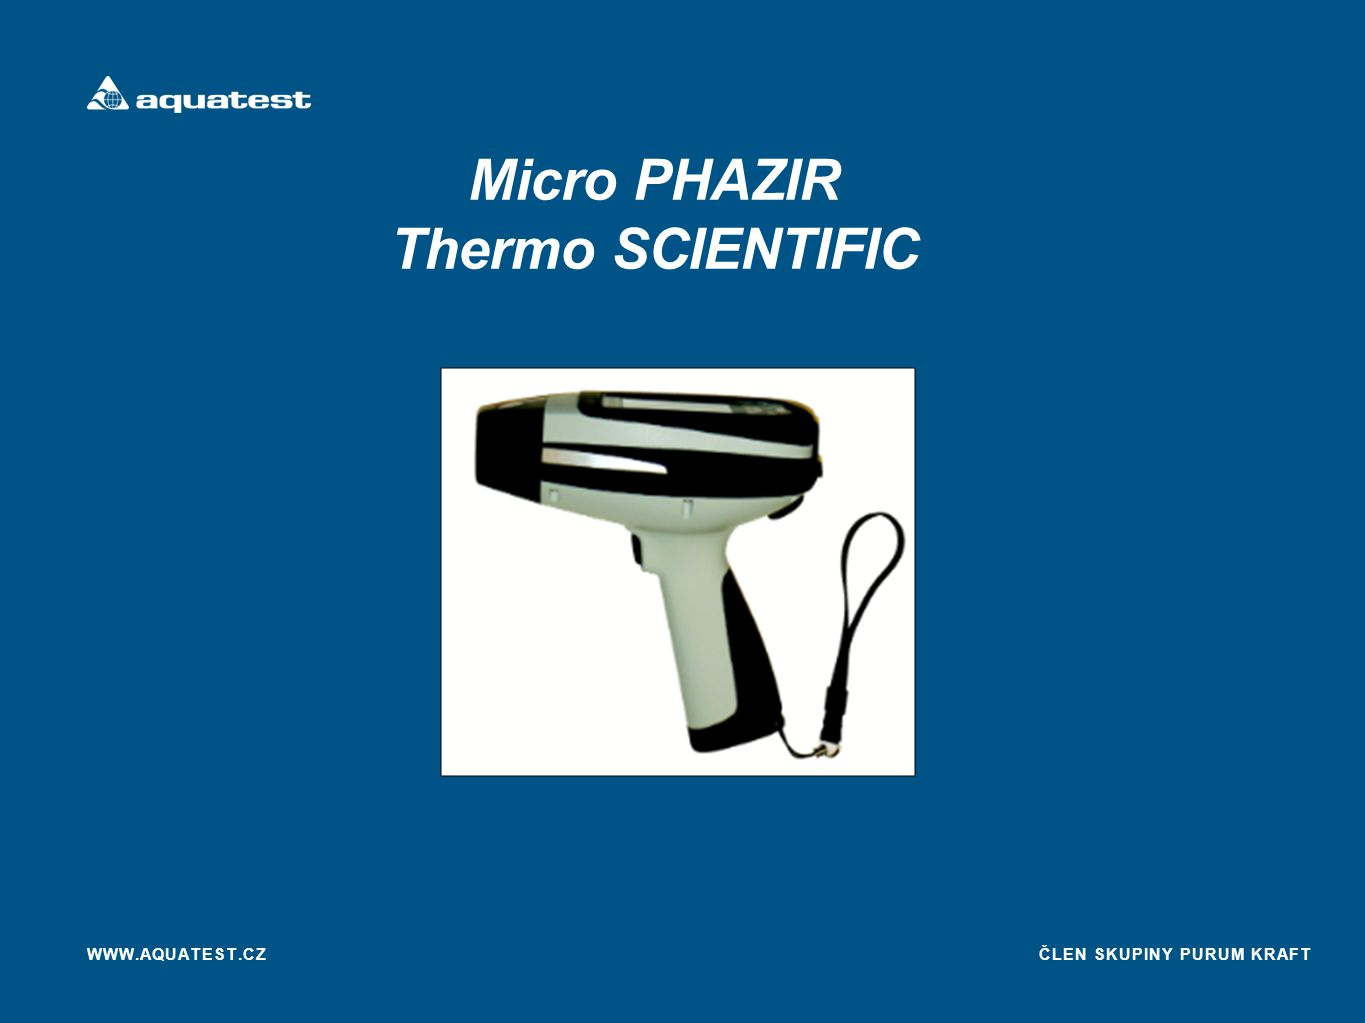 Micro PHAZIR Thermo SCIENTIFIC